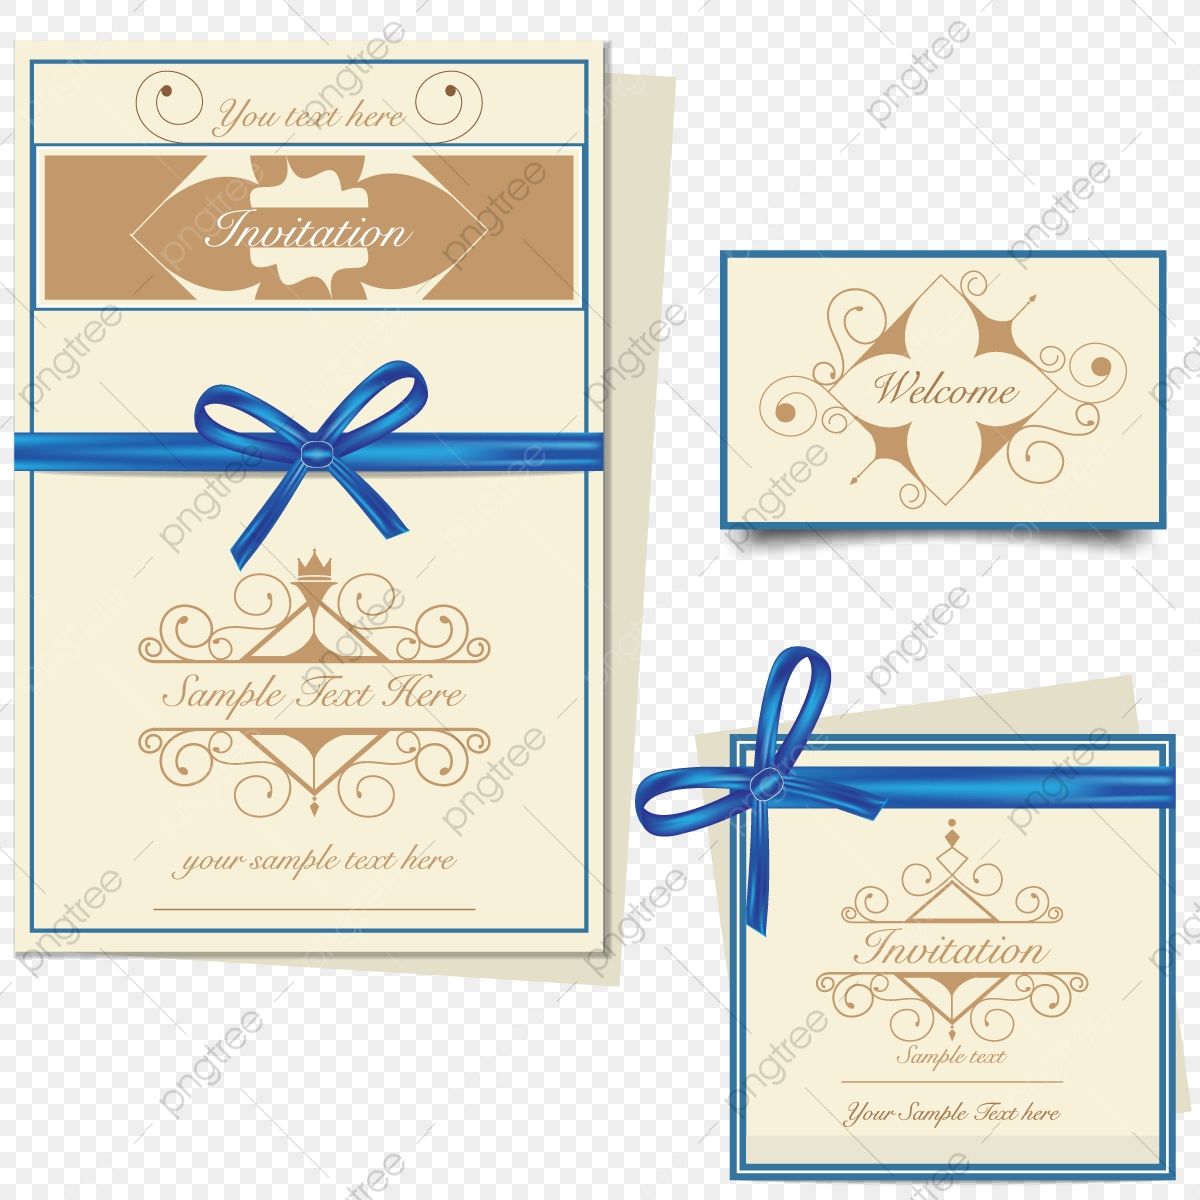 Elegant Invitation Card Templates Elegant Invitation Card